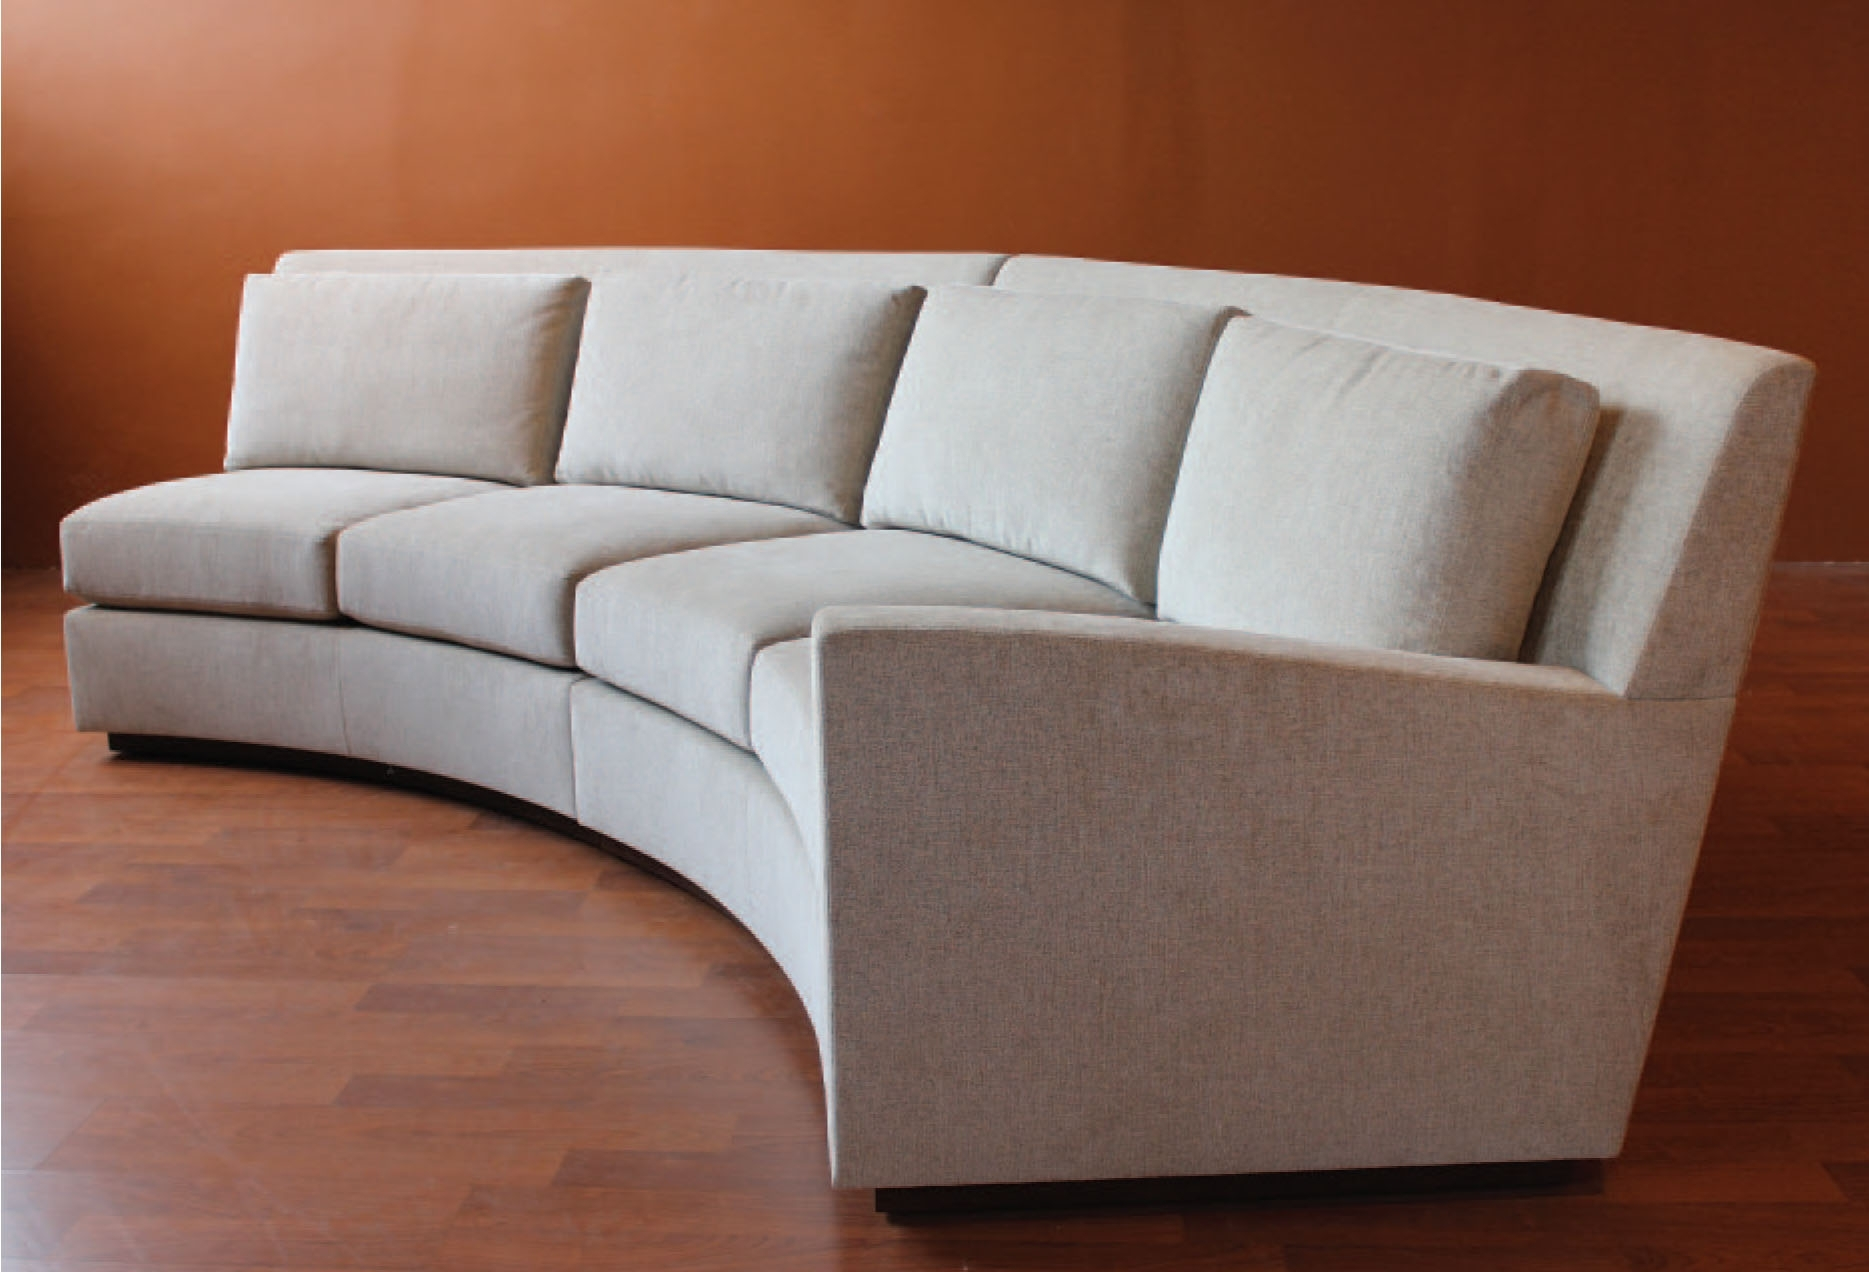 Loveseat : Curved Sectional Sofas For Small Spaces Loveseat Styles Intended For Rounded Sofas (Image 6 of 10)